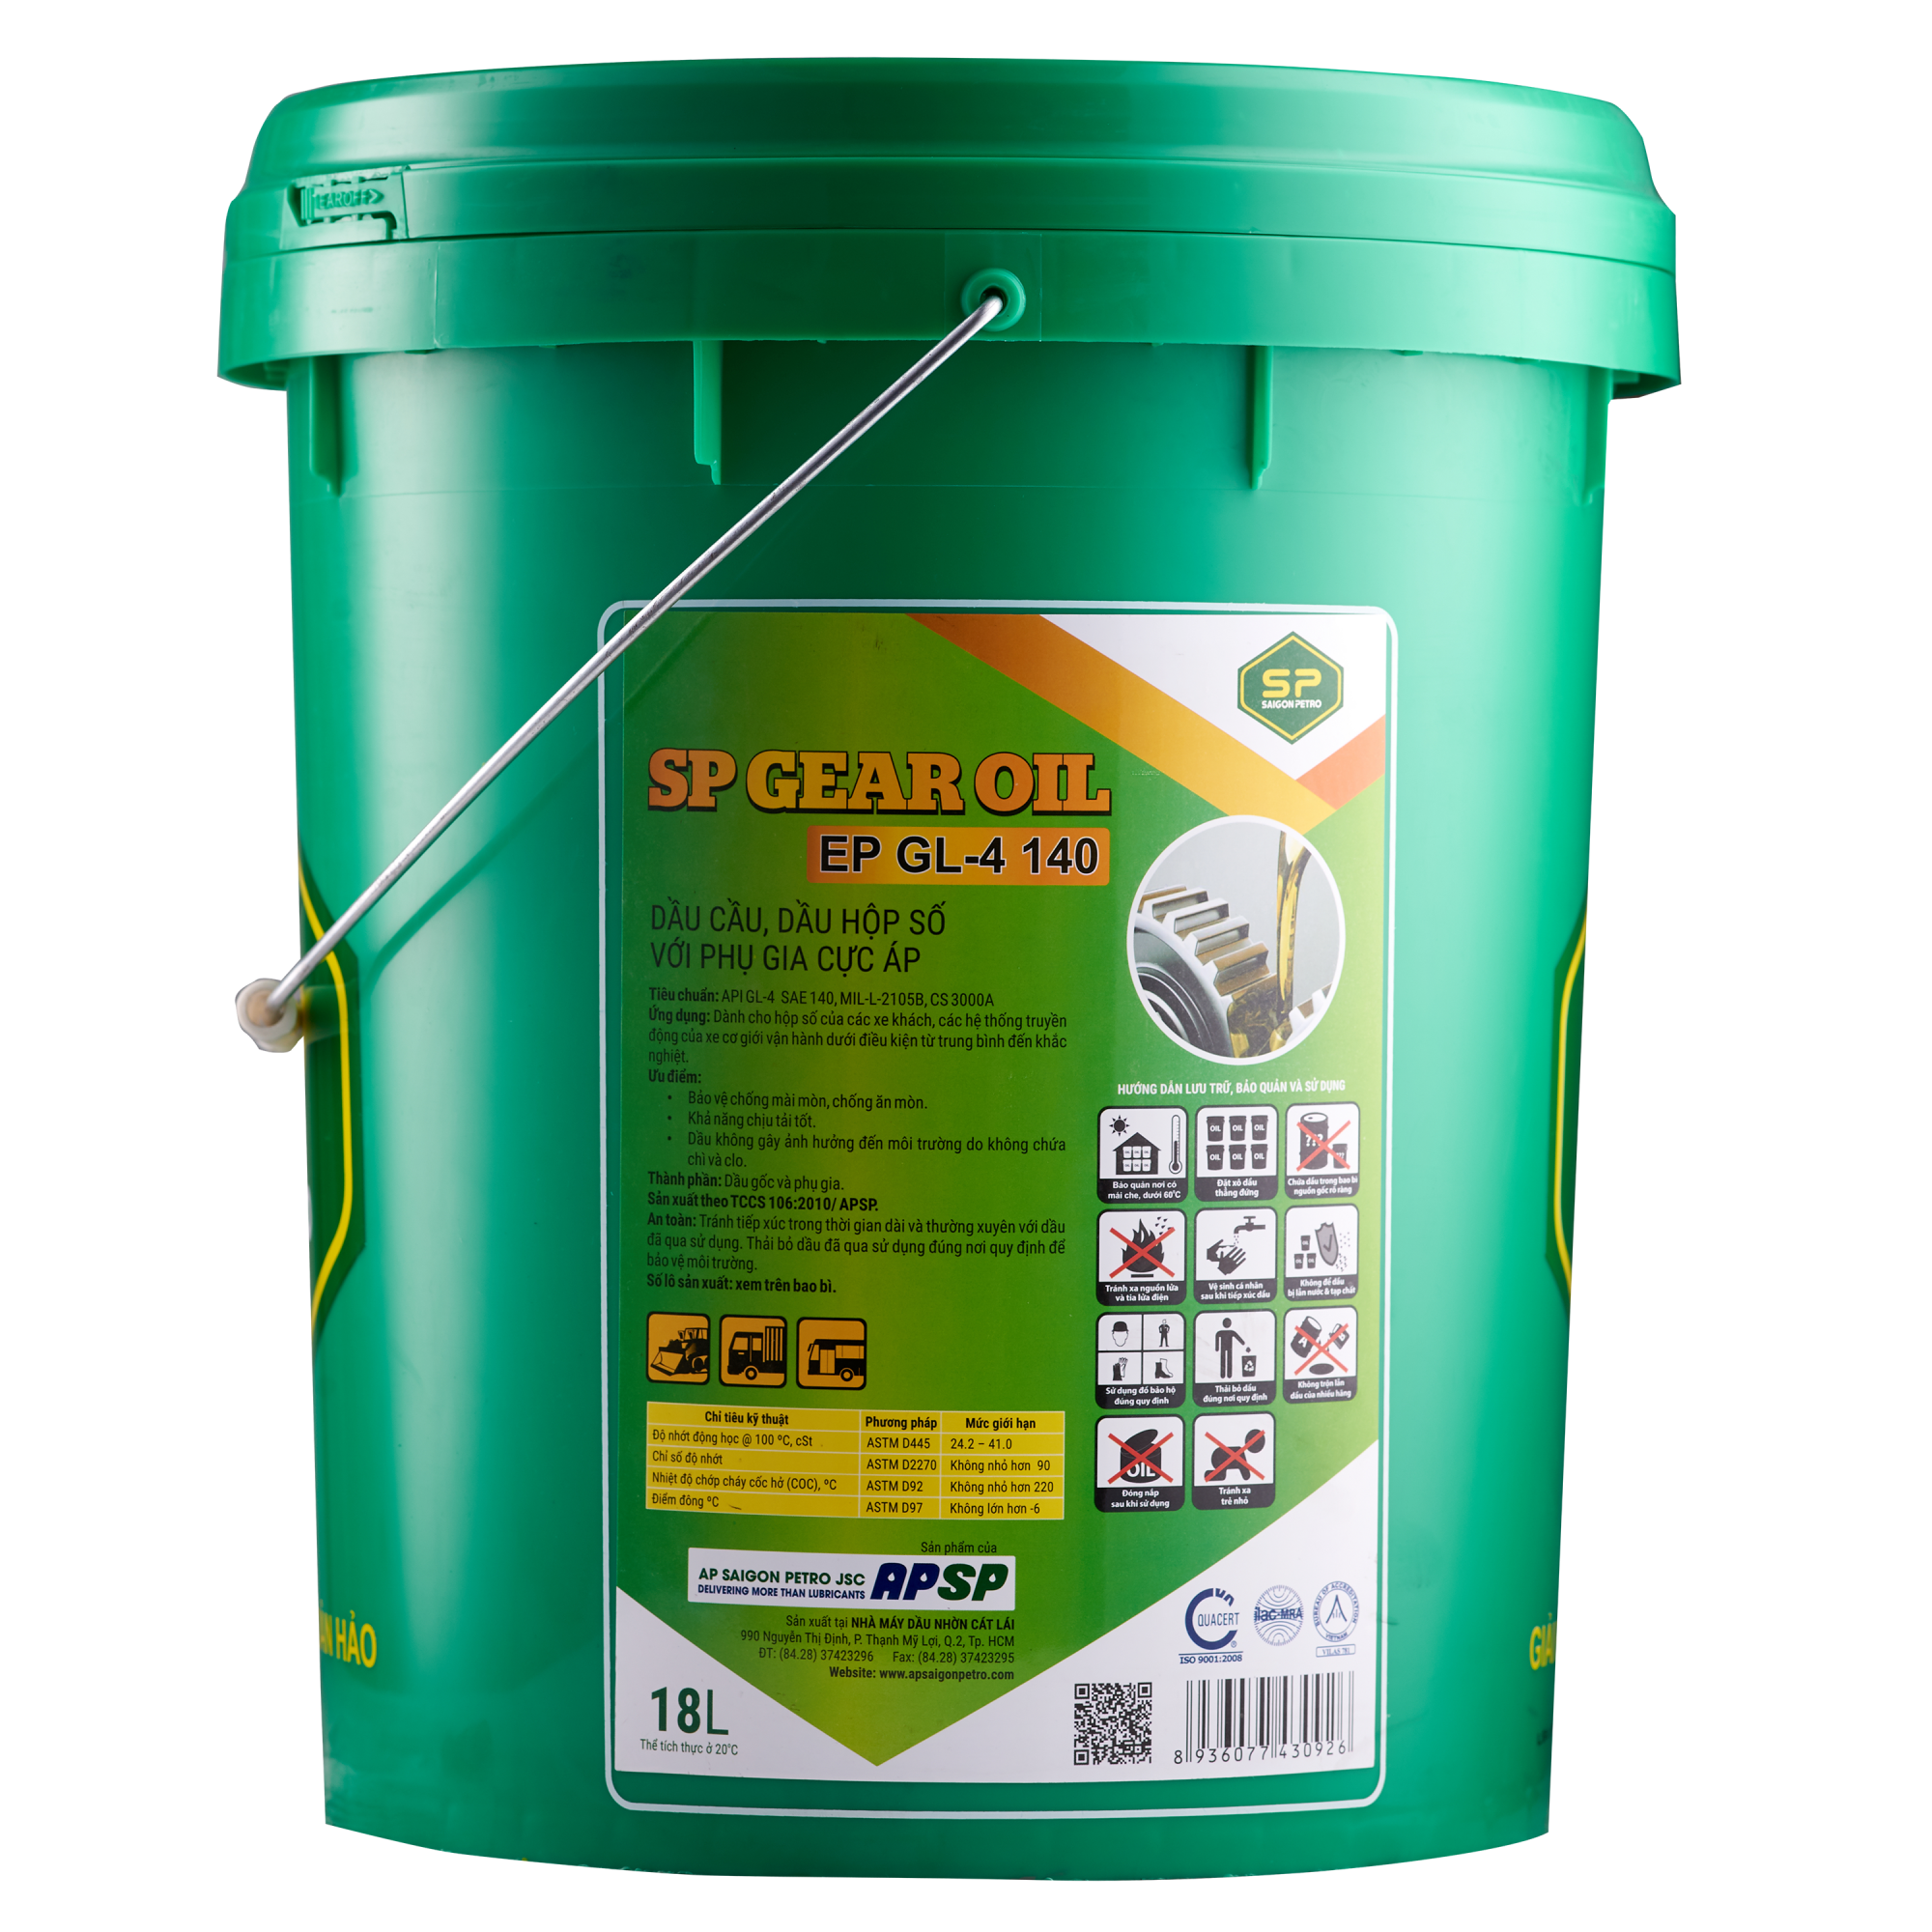 SP GEAR OIL EP GL-4 140